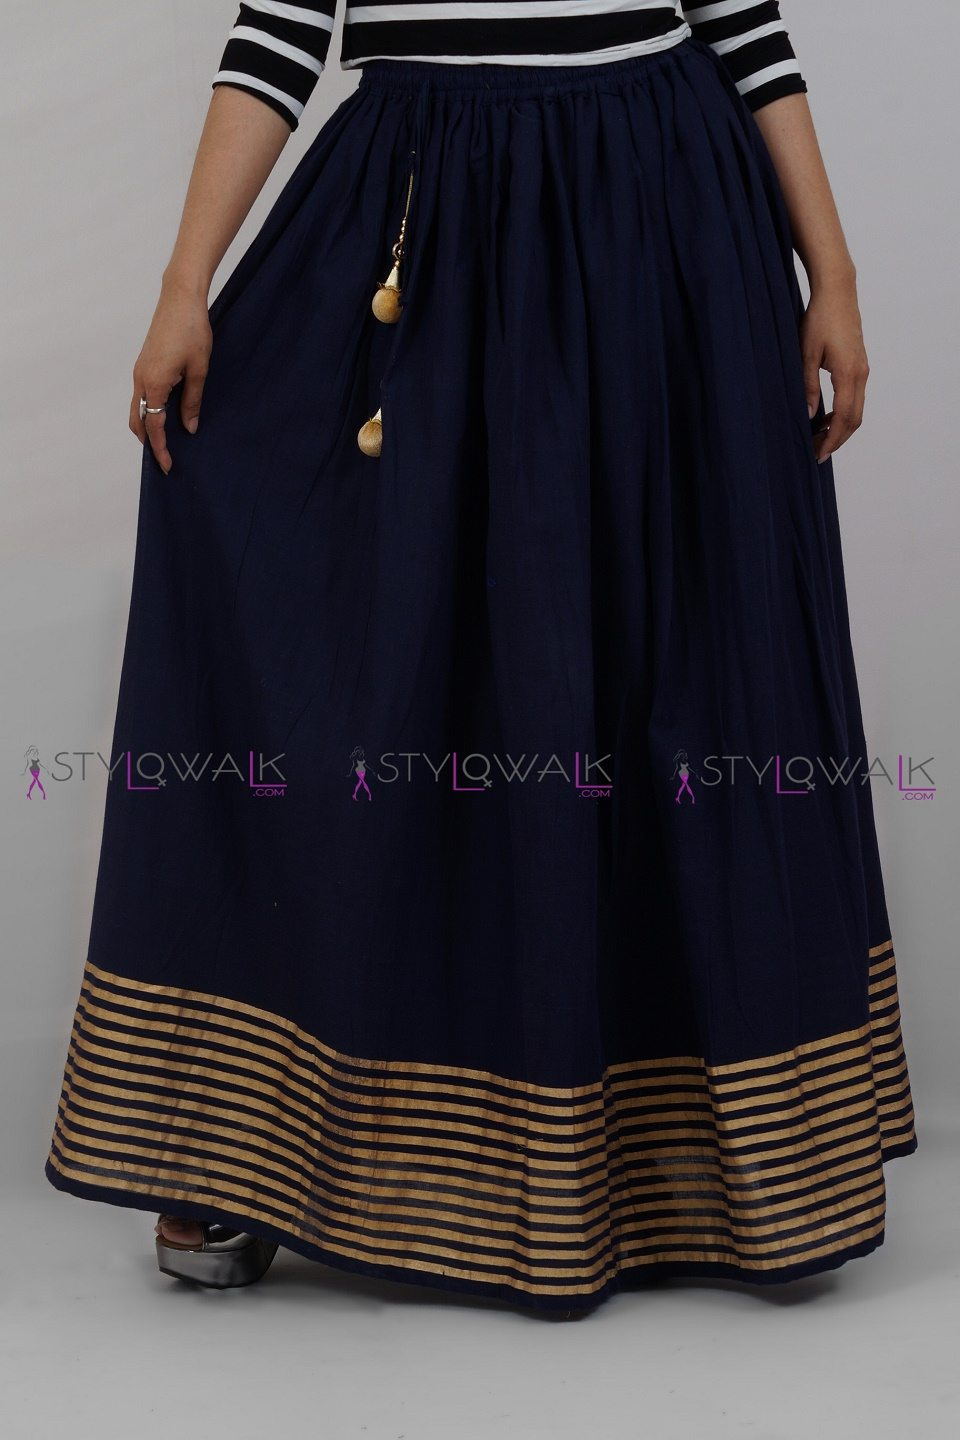 Cottom Border Lning Skirt- Neay Blue Skirt- stylowalk.com